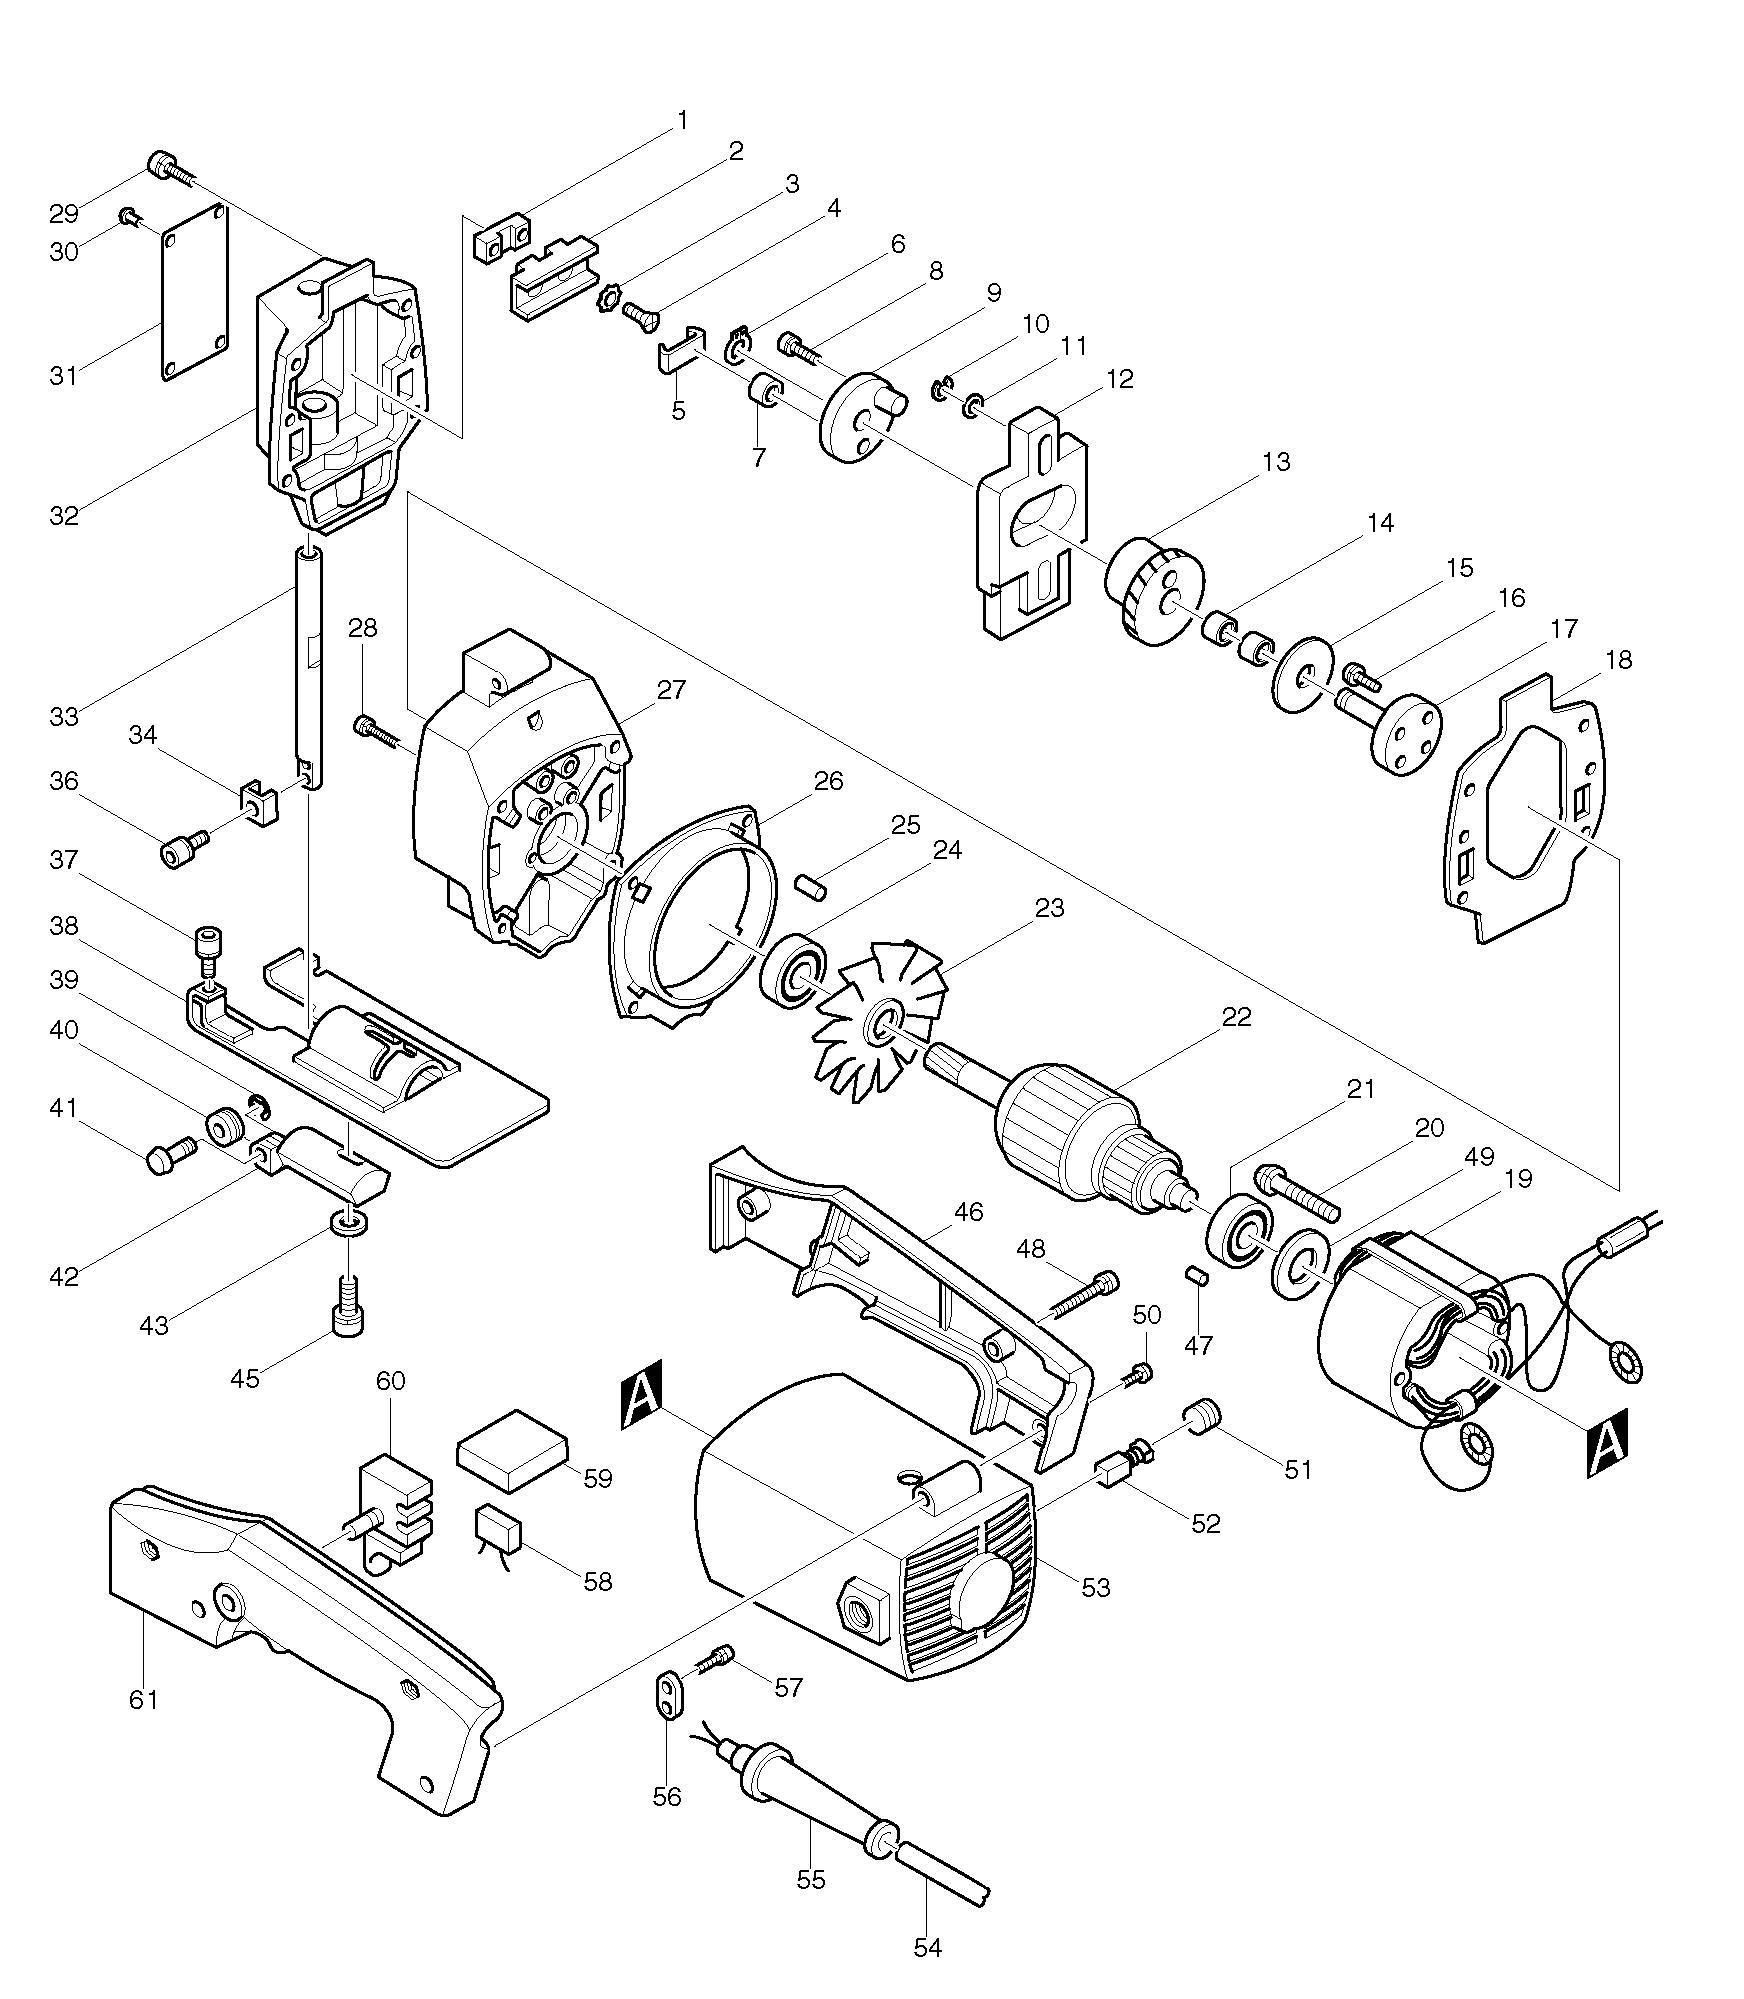 bosch jigsaw parts diagram spares for makita 4300bv jigsaw